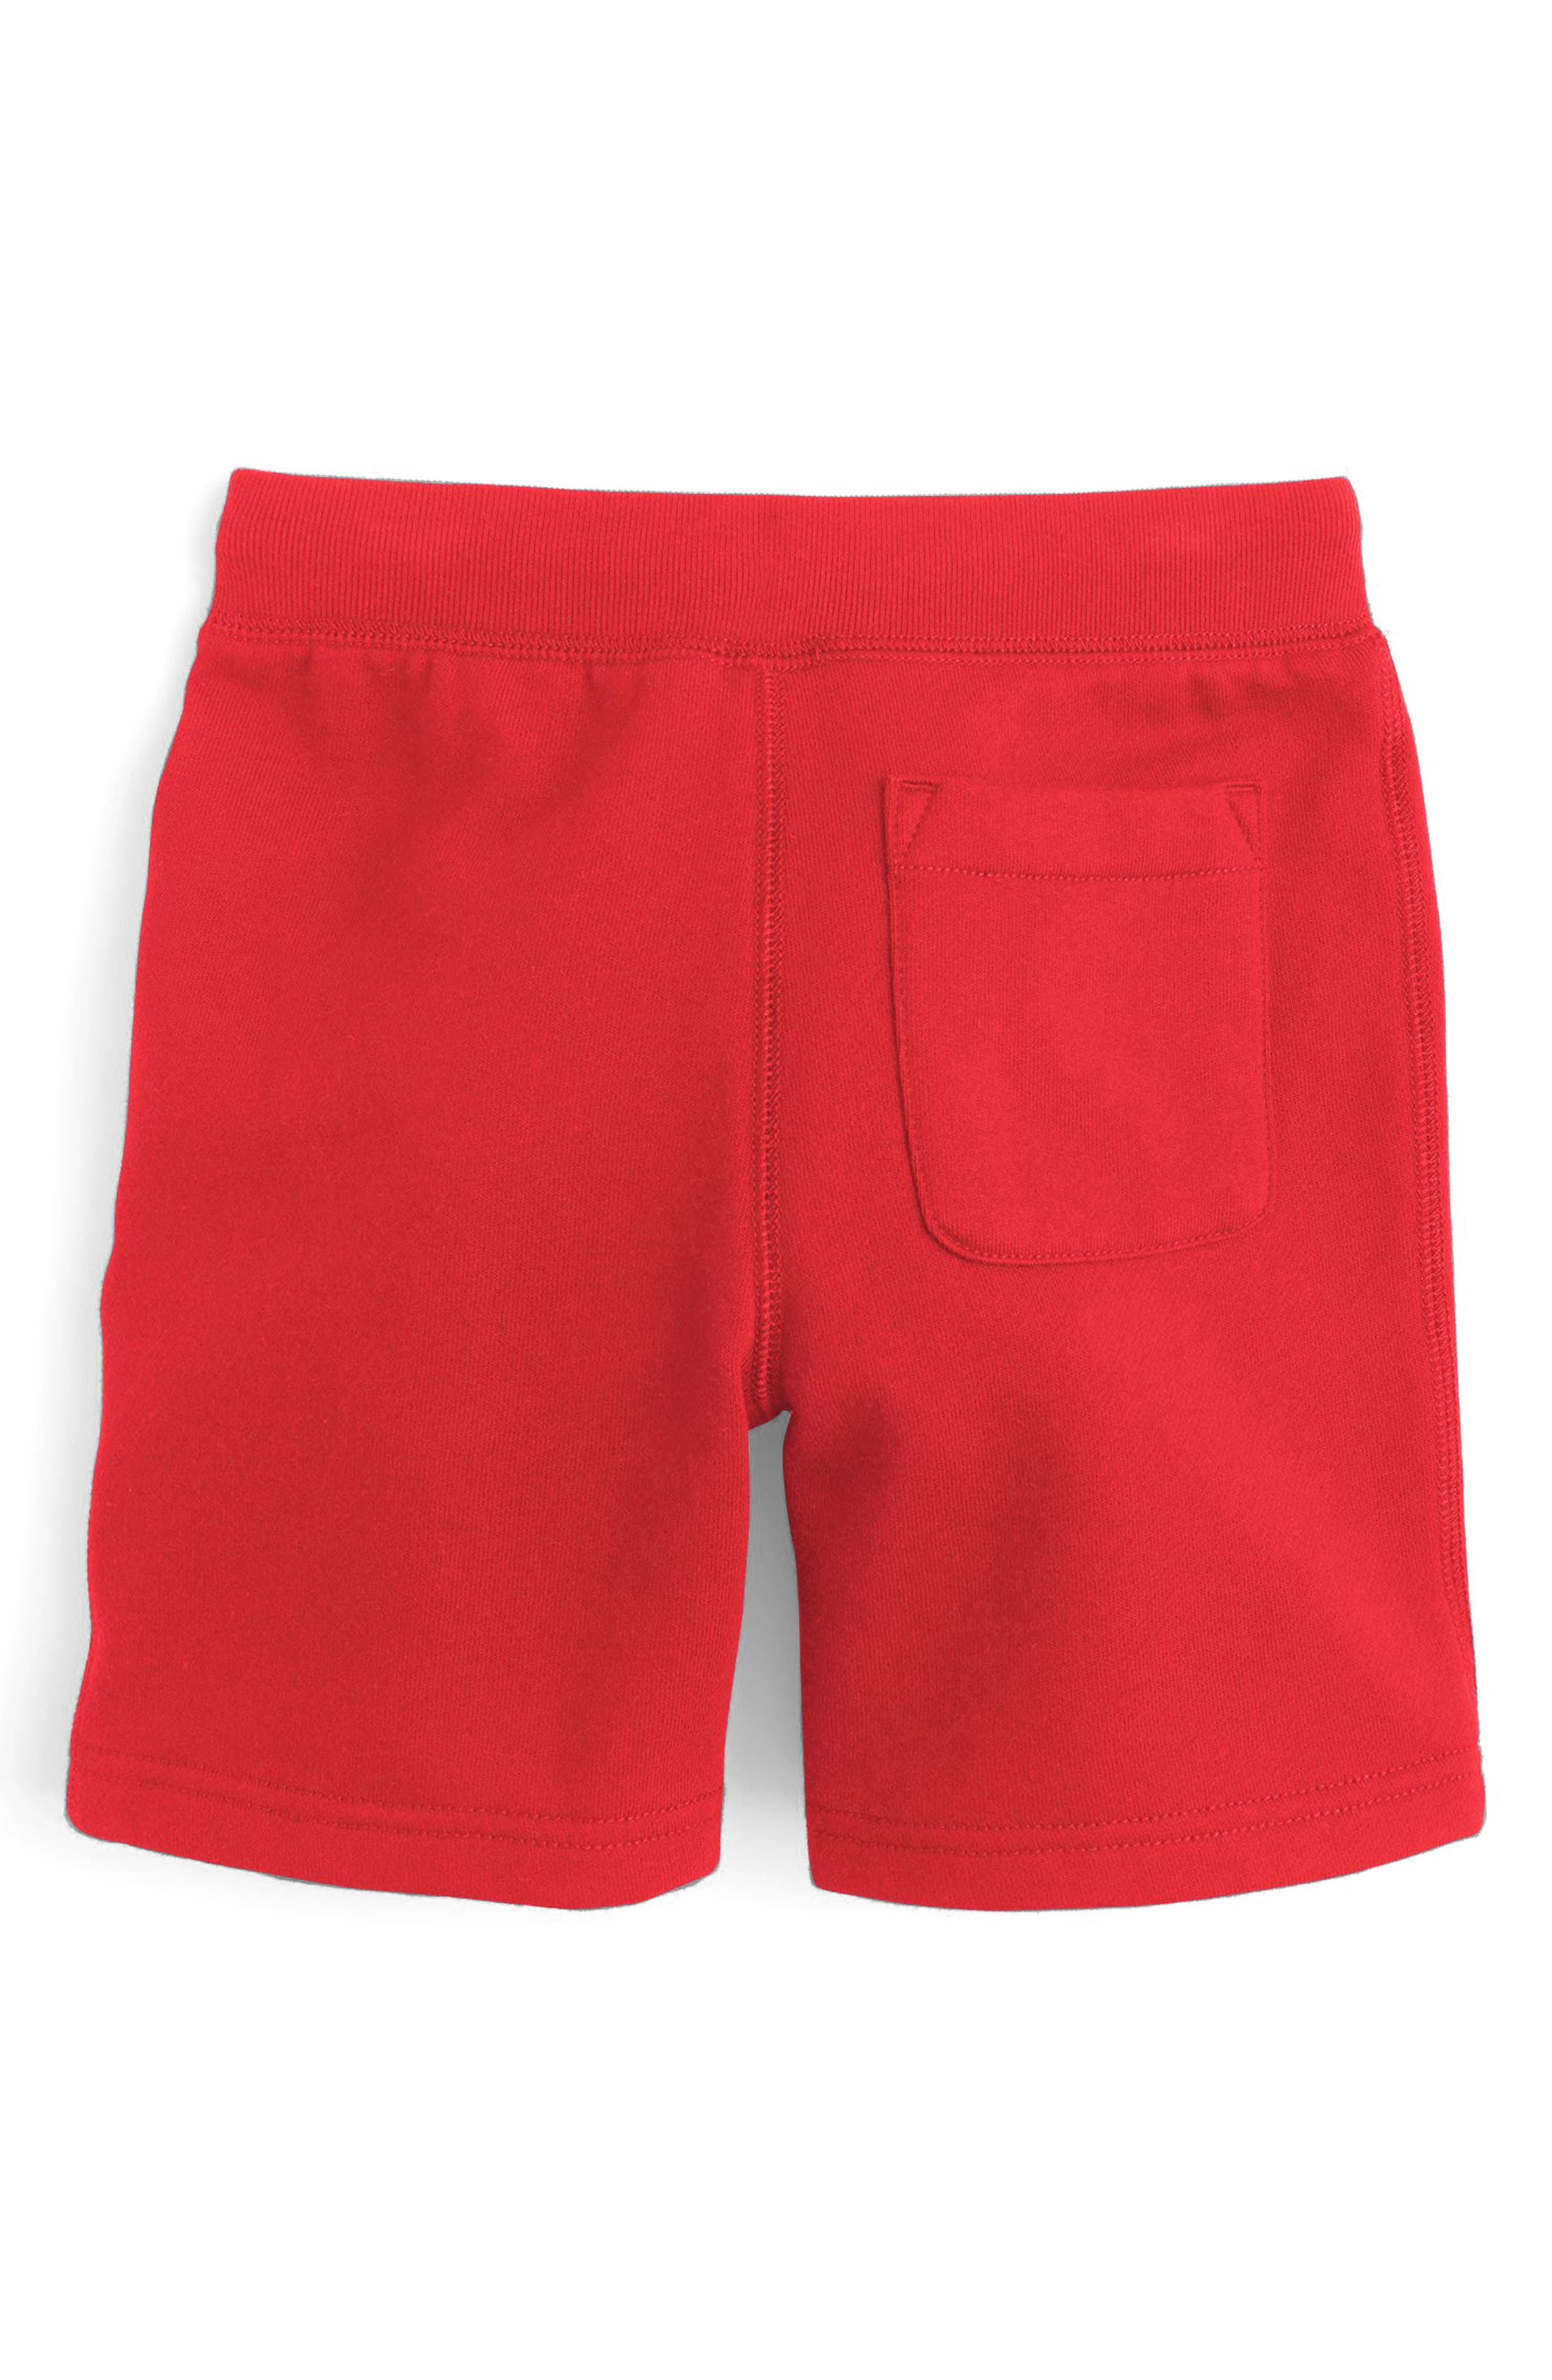 Alternate Image 2  - crewcuts by J.Crew Classic Sweat Shorts (Toddler Boys, Little Boys & Big Boys)